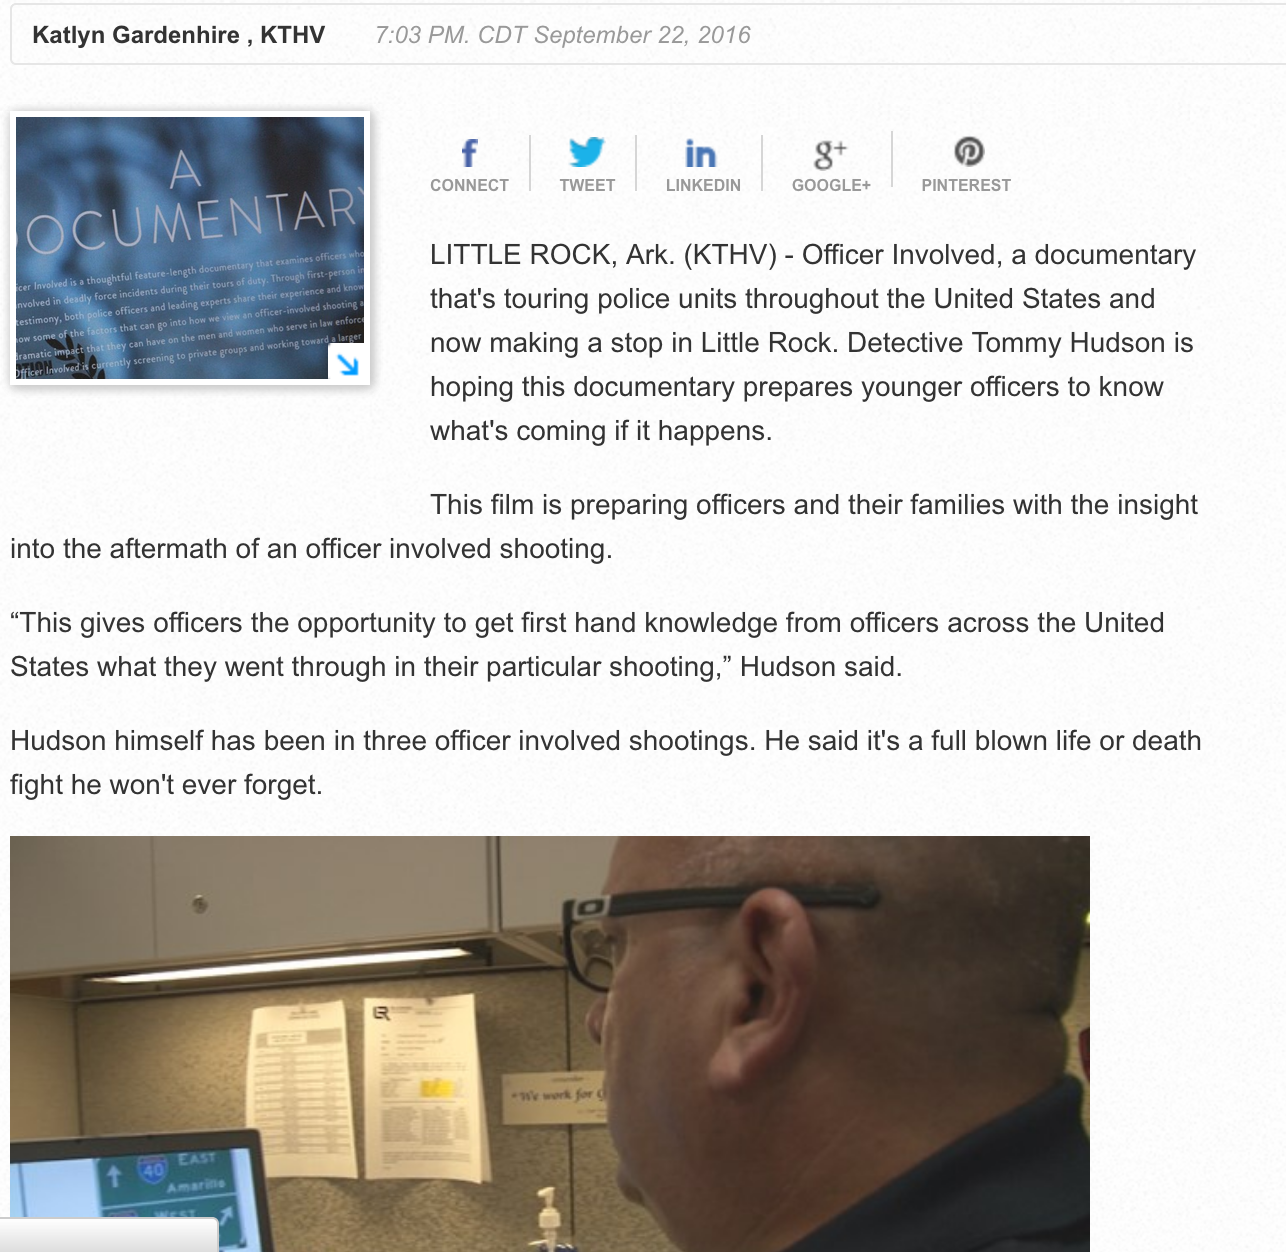 Little Rock police mentally prepare for shootings with documentary showing.   WKHTV